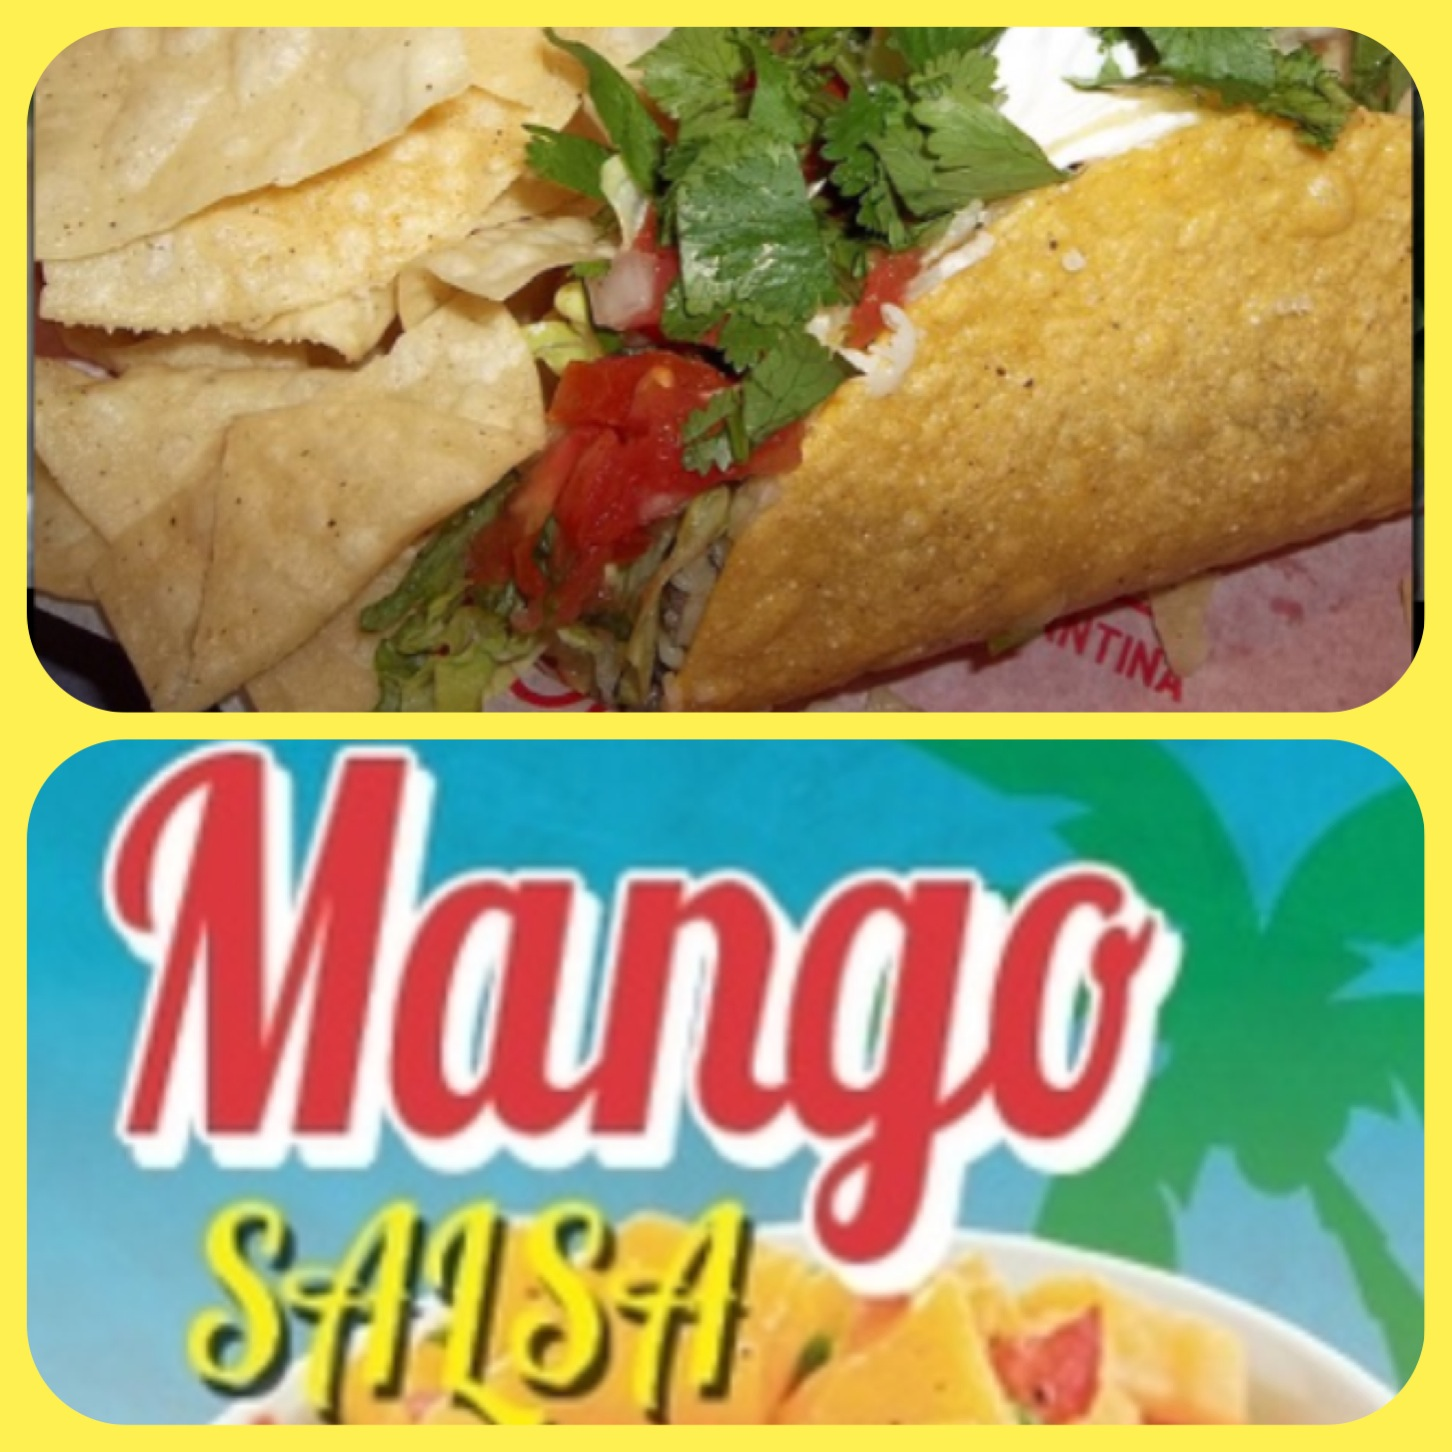 Fish tacos with mango salsa are a Friday must!